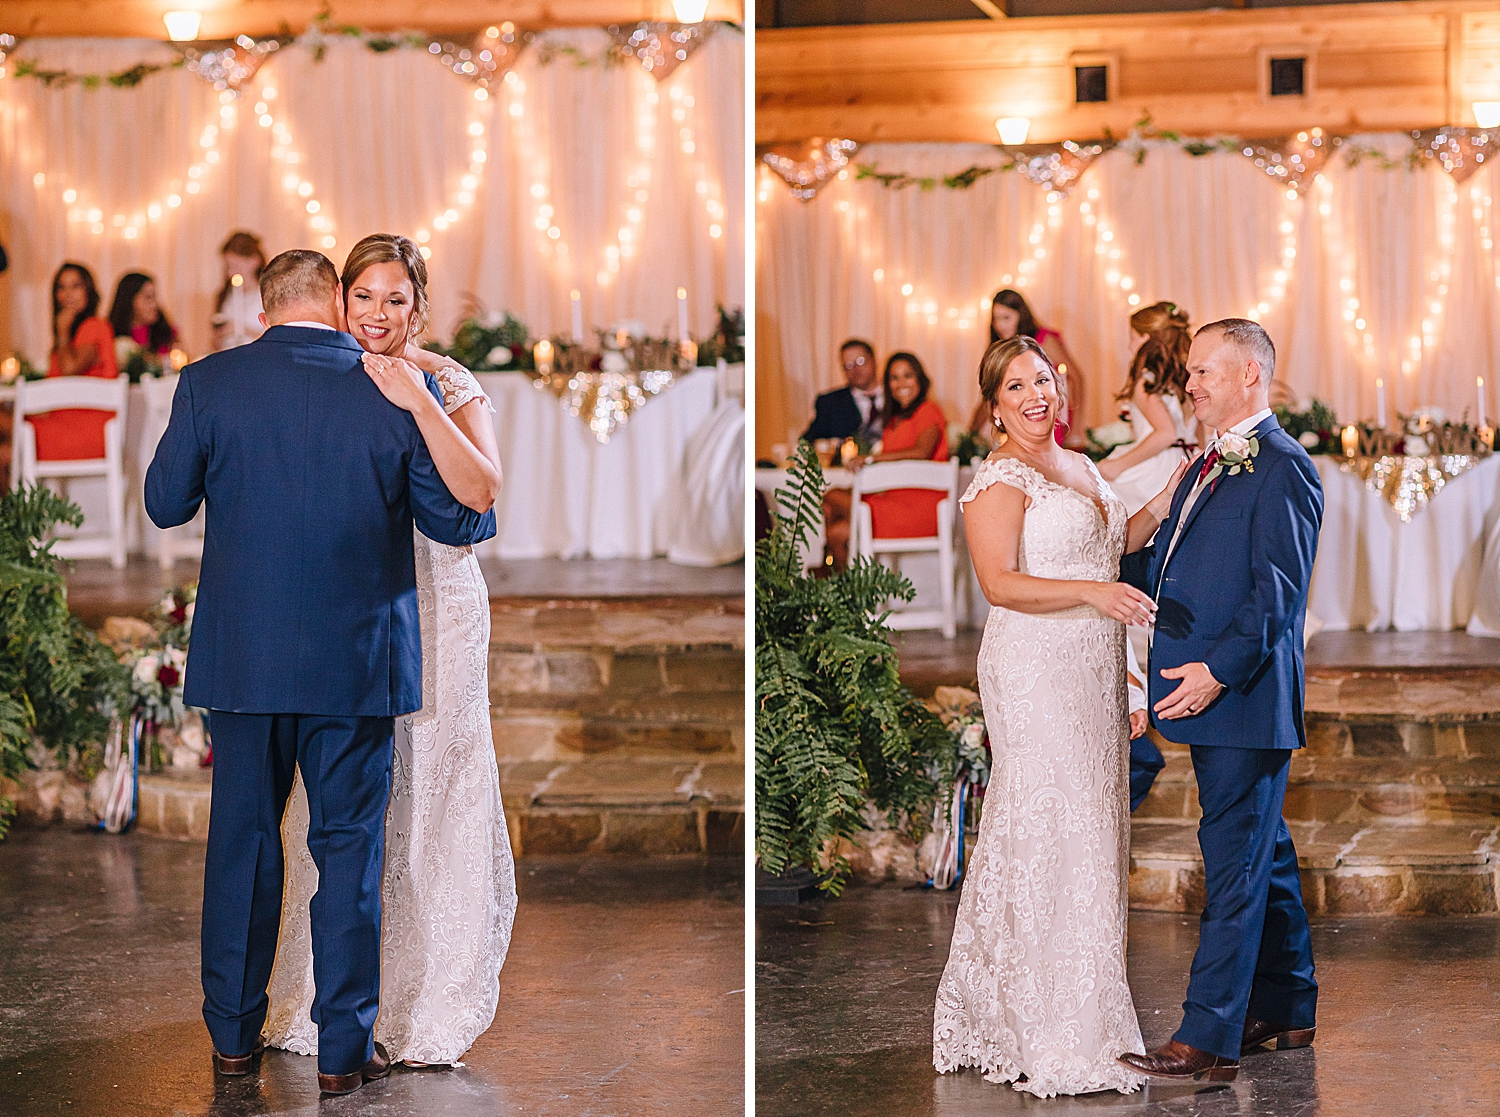 Geronimo-Oaks-Wedding-Venue-Seguin-Texas-Elegant-Navy-Burgundy-Wedding-Carly-Barton-Photography_0097.jpg